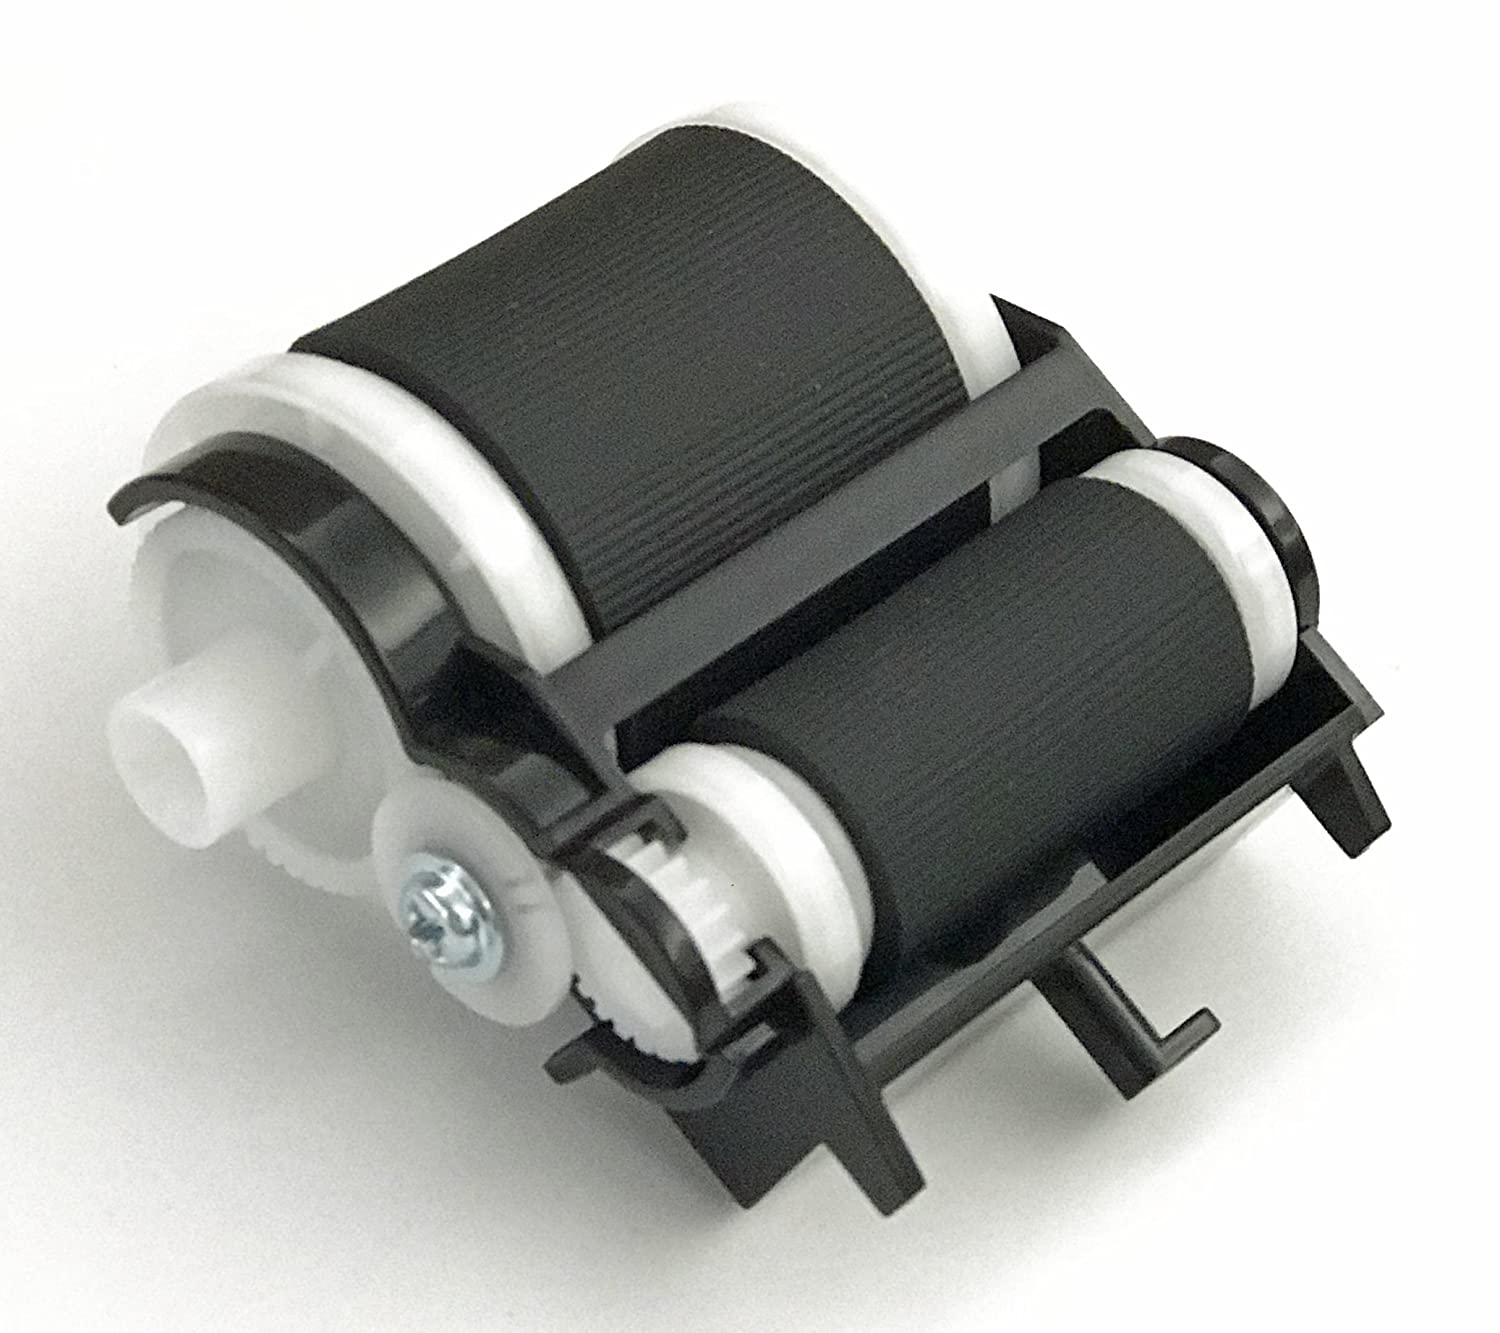 Amazon.com: OEM Brother Pickup Feed Roller Specifically For Brother